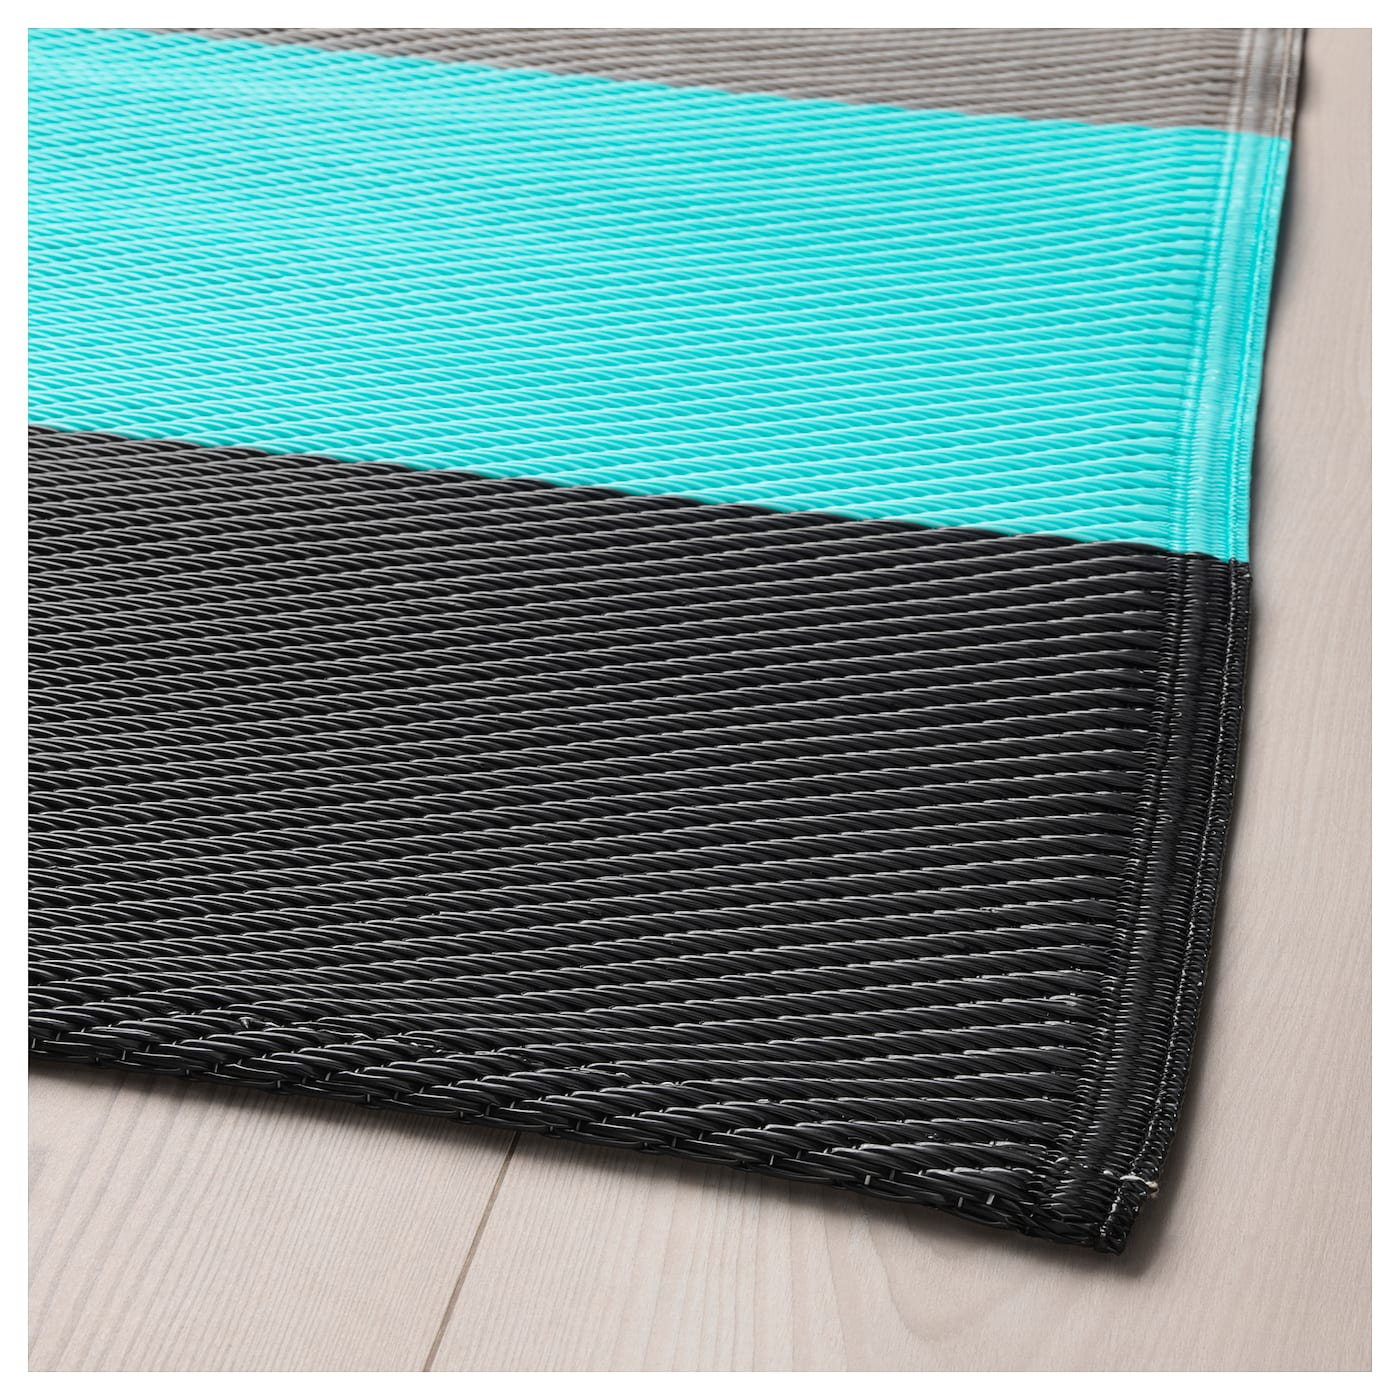 rug sky australia blue kids flatweave stripe weave flat wide free side shipping area also white kelim runners turquoise light rugs image wool enhance and nom floor